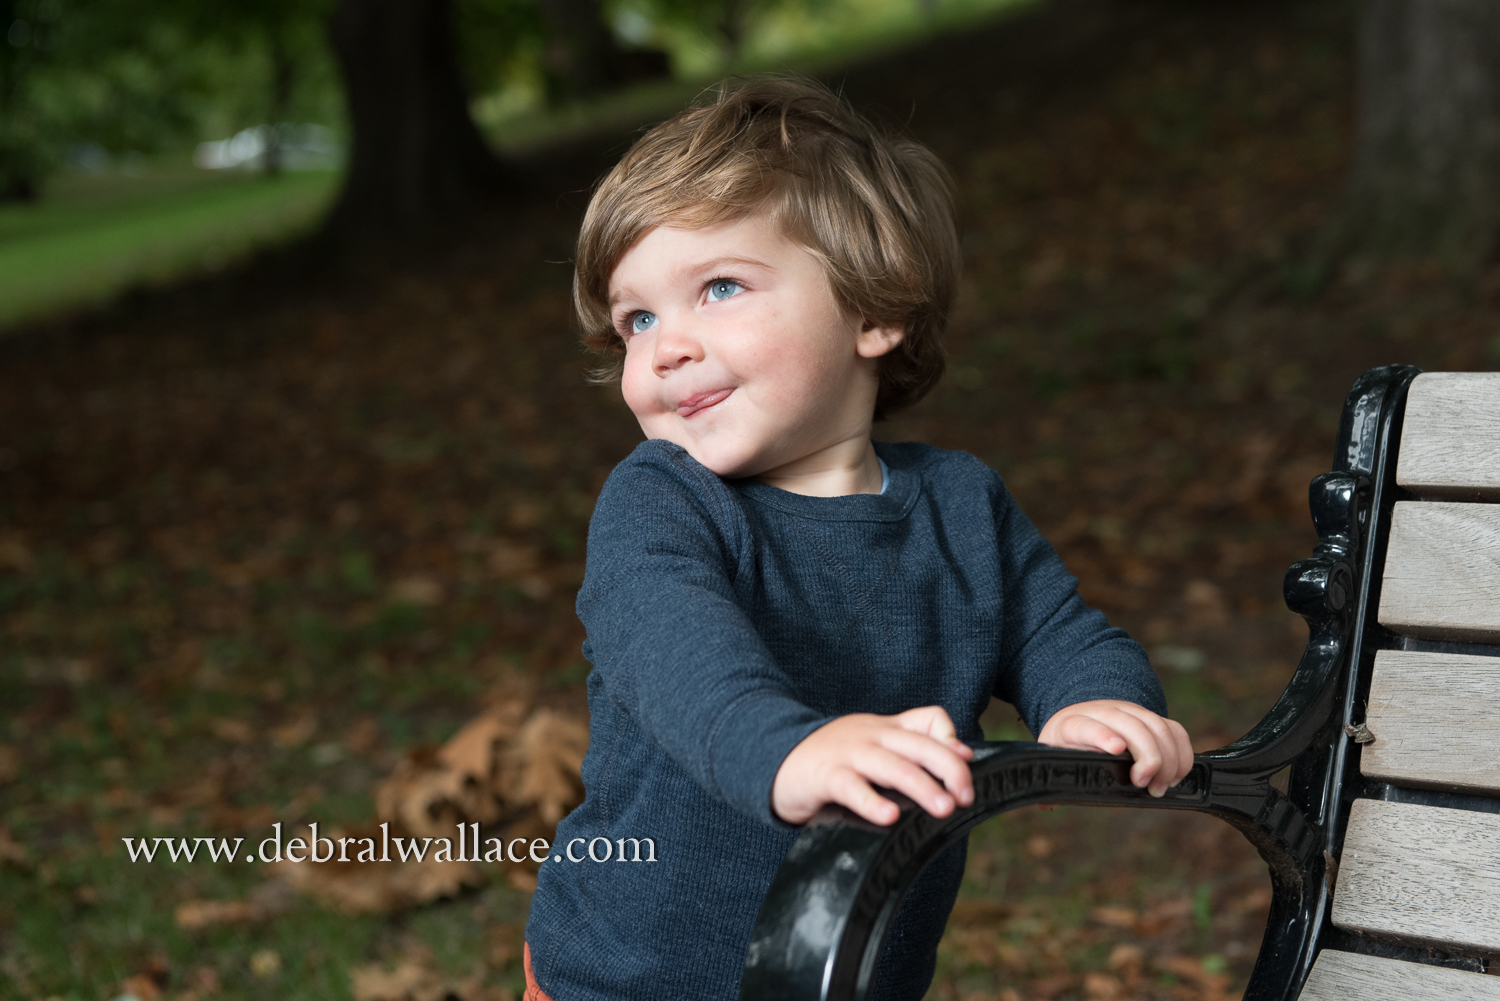 highland-park-candid-family-photography-toddler-fall-leaves-8912